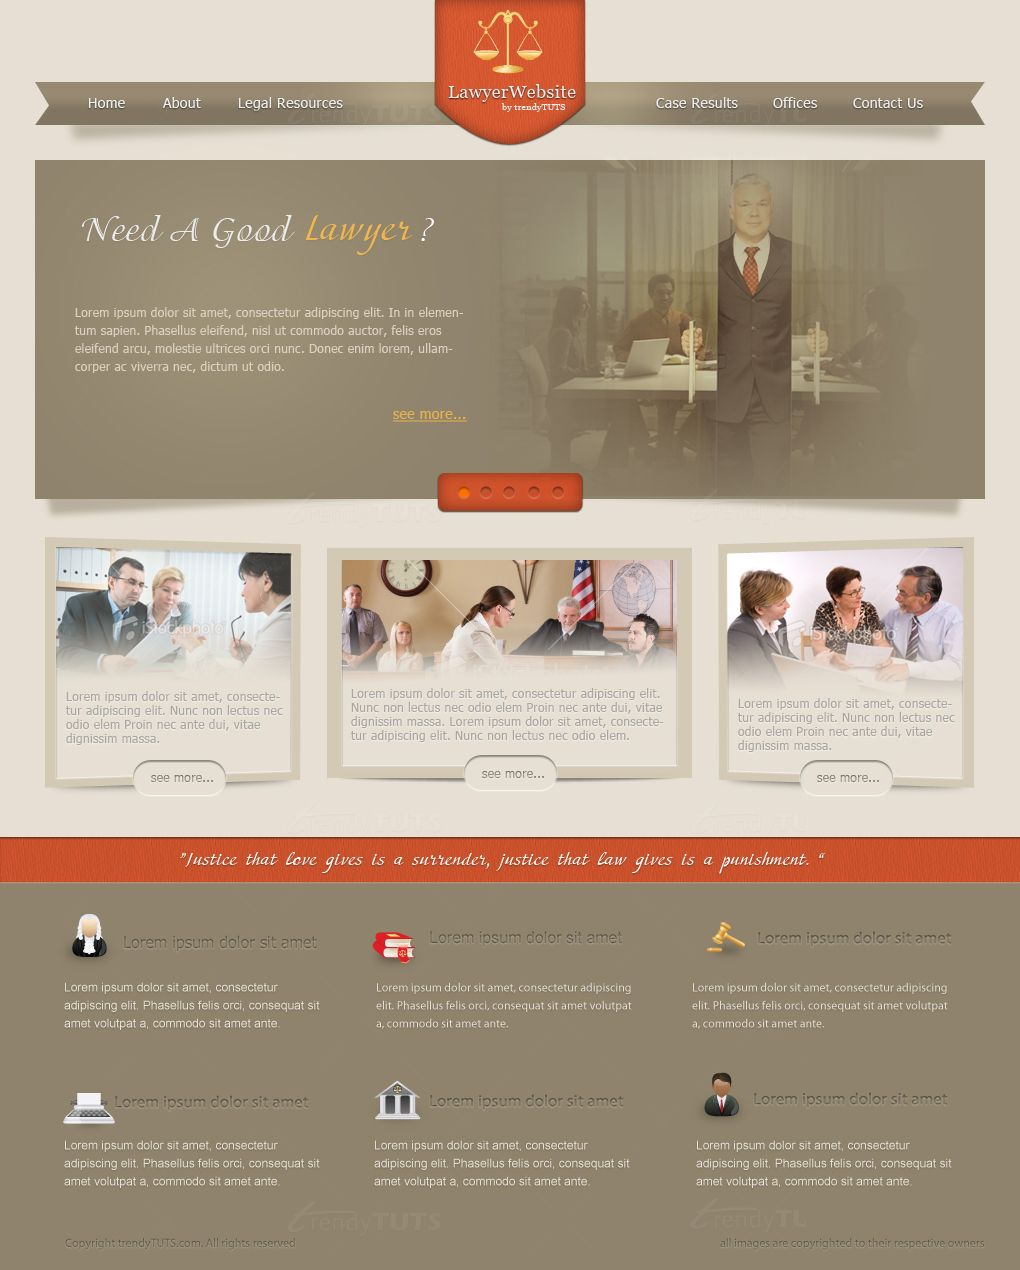 How to design a lawjustice website in photoshop photography design web layout in photoshop 25 fresh tutorials whether you kick off a web design layout by sketching on papers or blank photoshop canvas baditri Choice Image